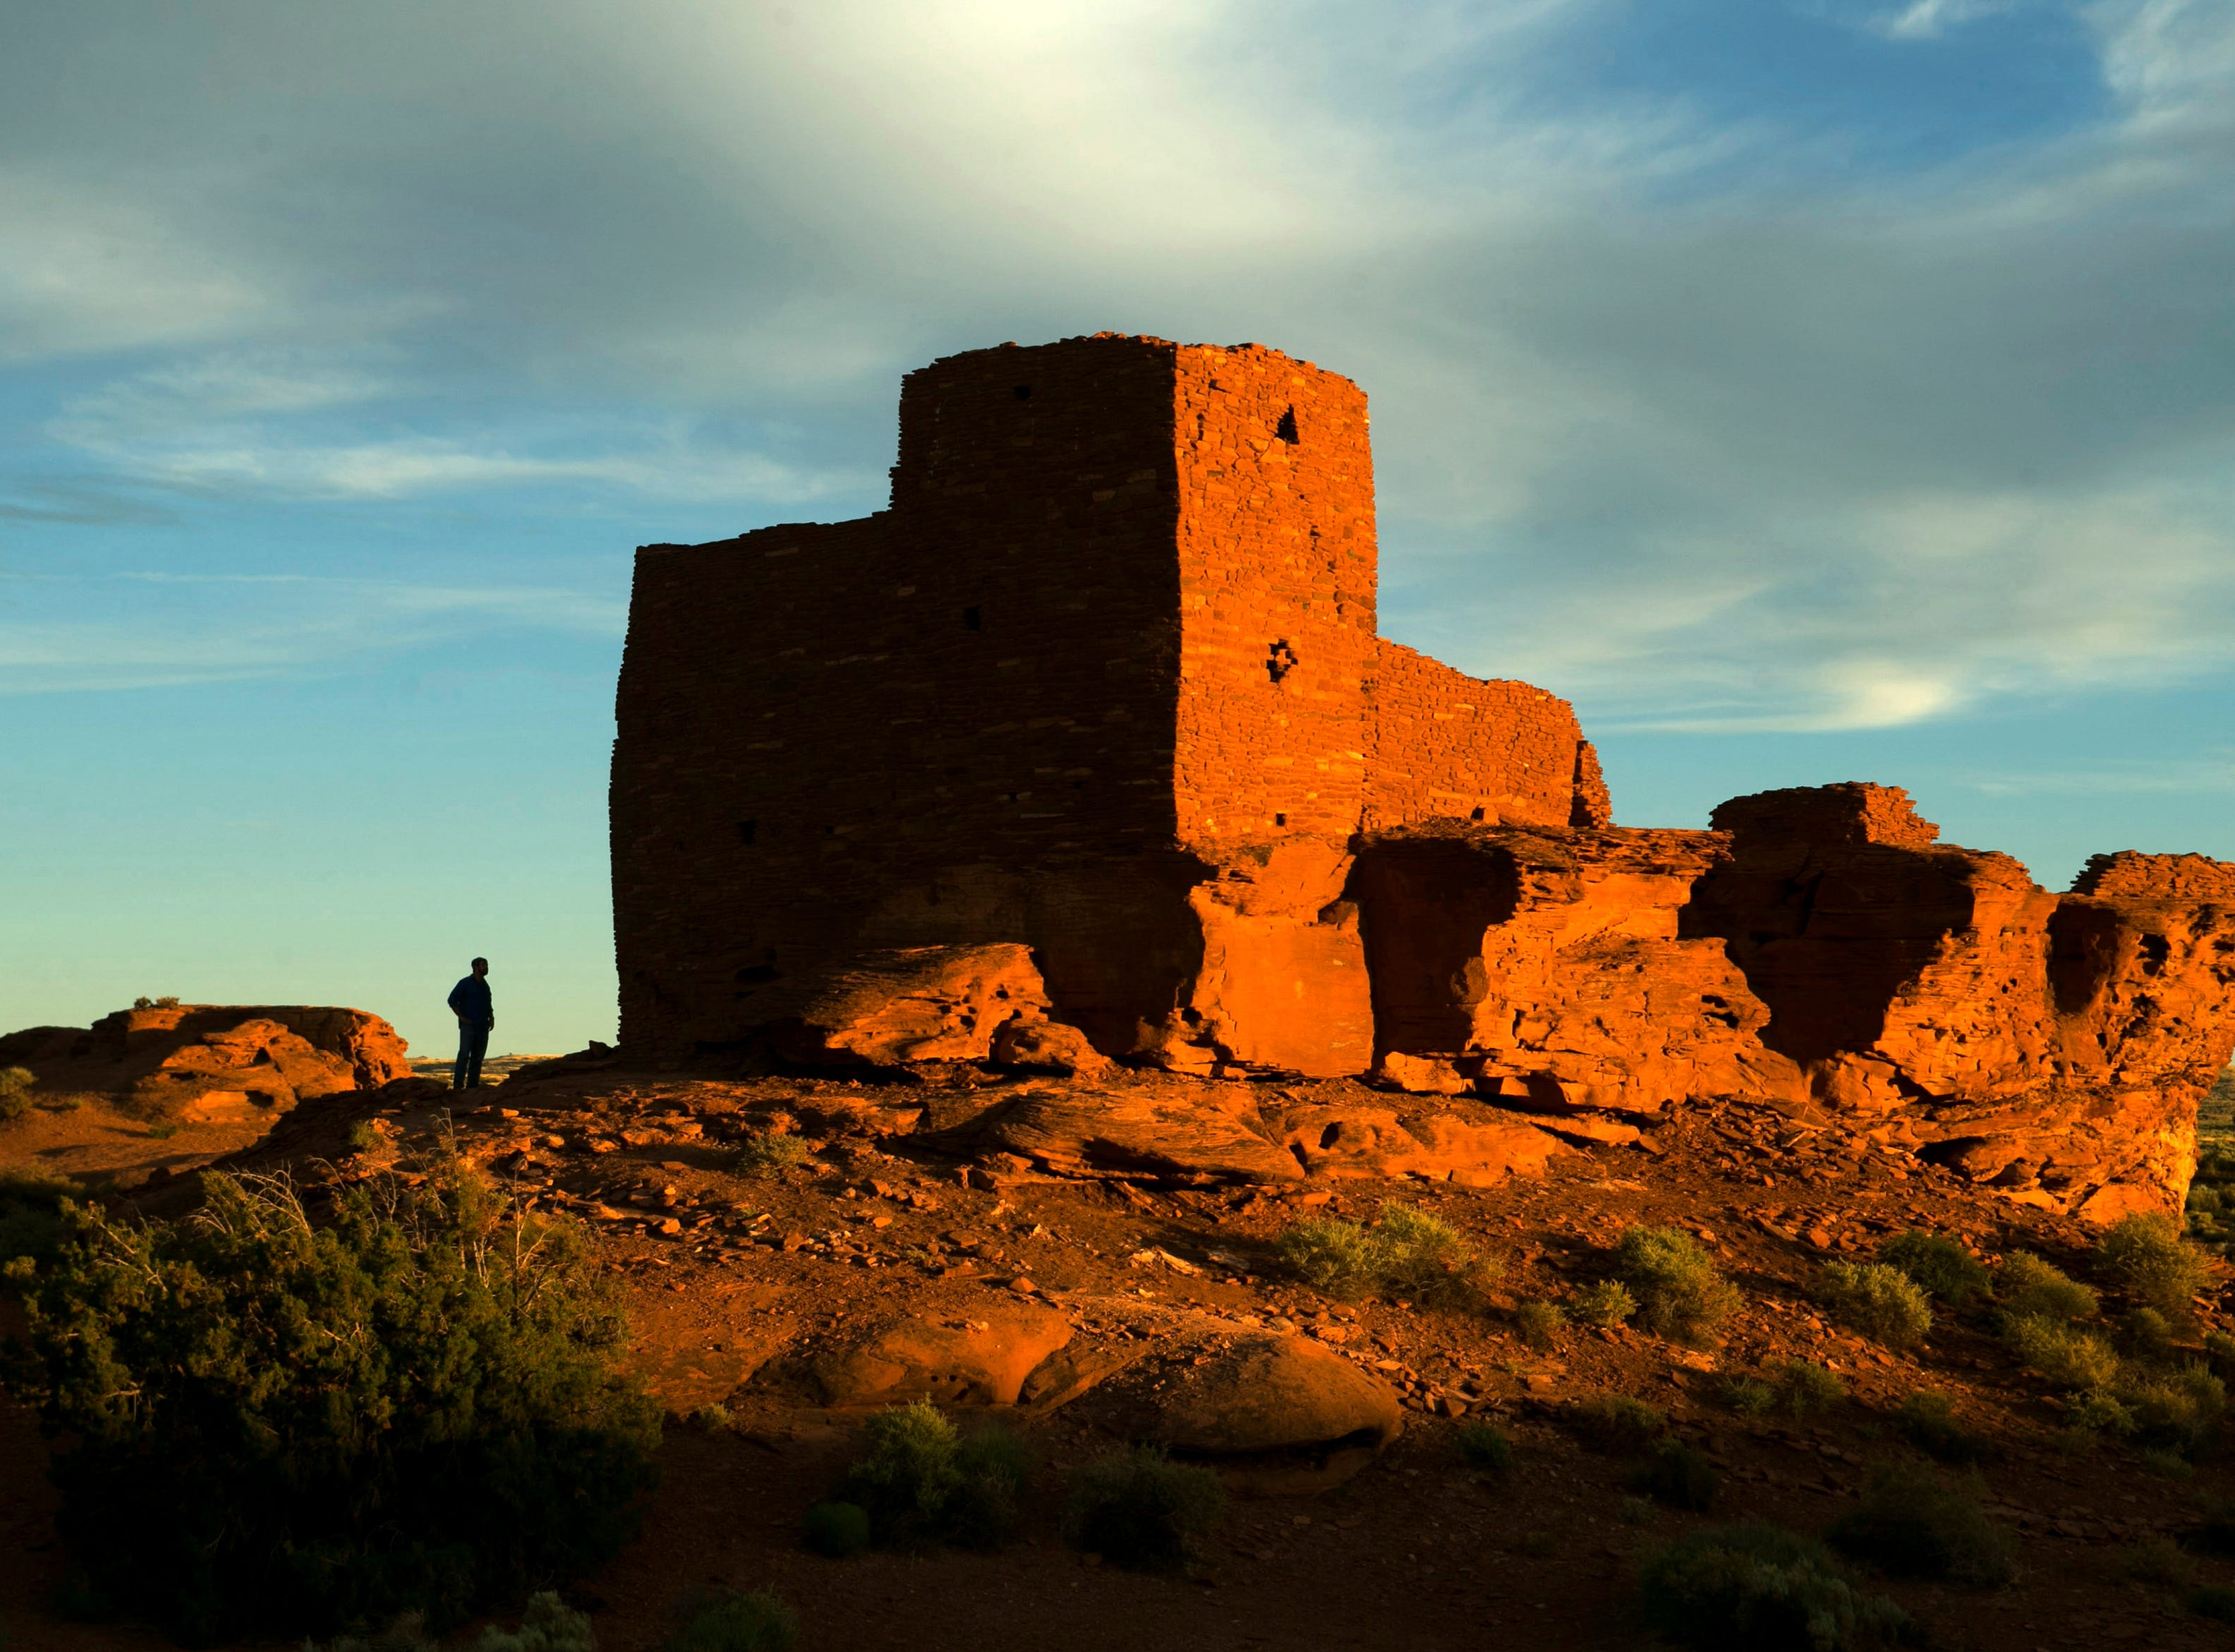 The Wukoki Pueblo at the Wupatki National Monument in Arizona is seen at sunset on June 4, 2014. It is believed to be around 800 years old.